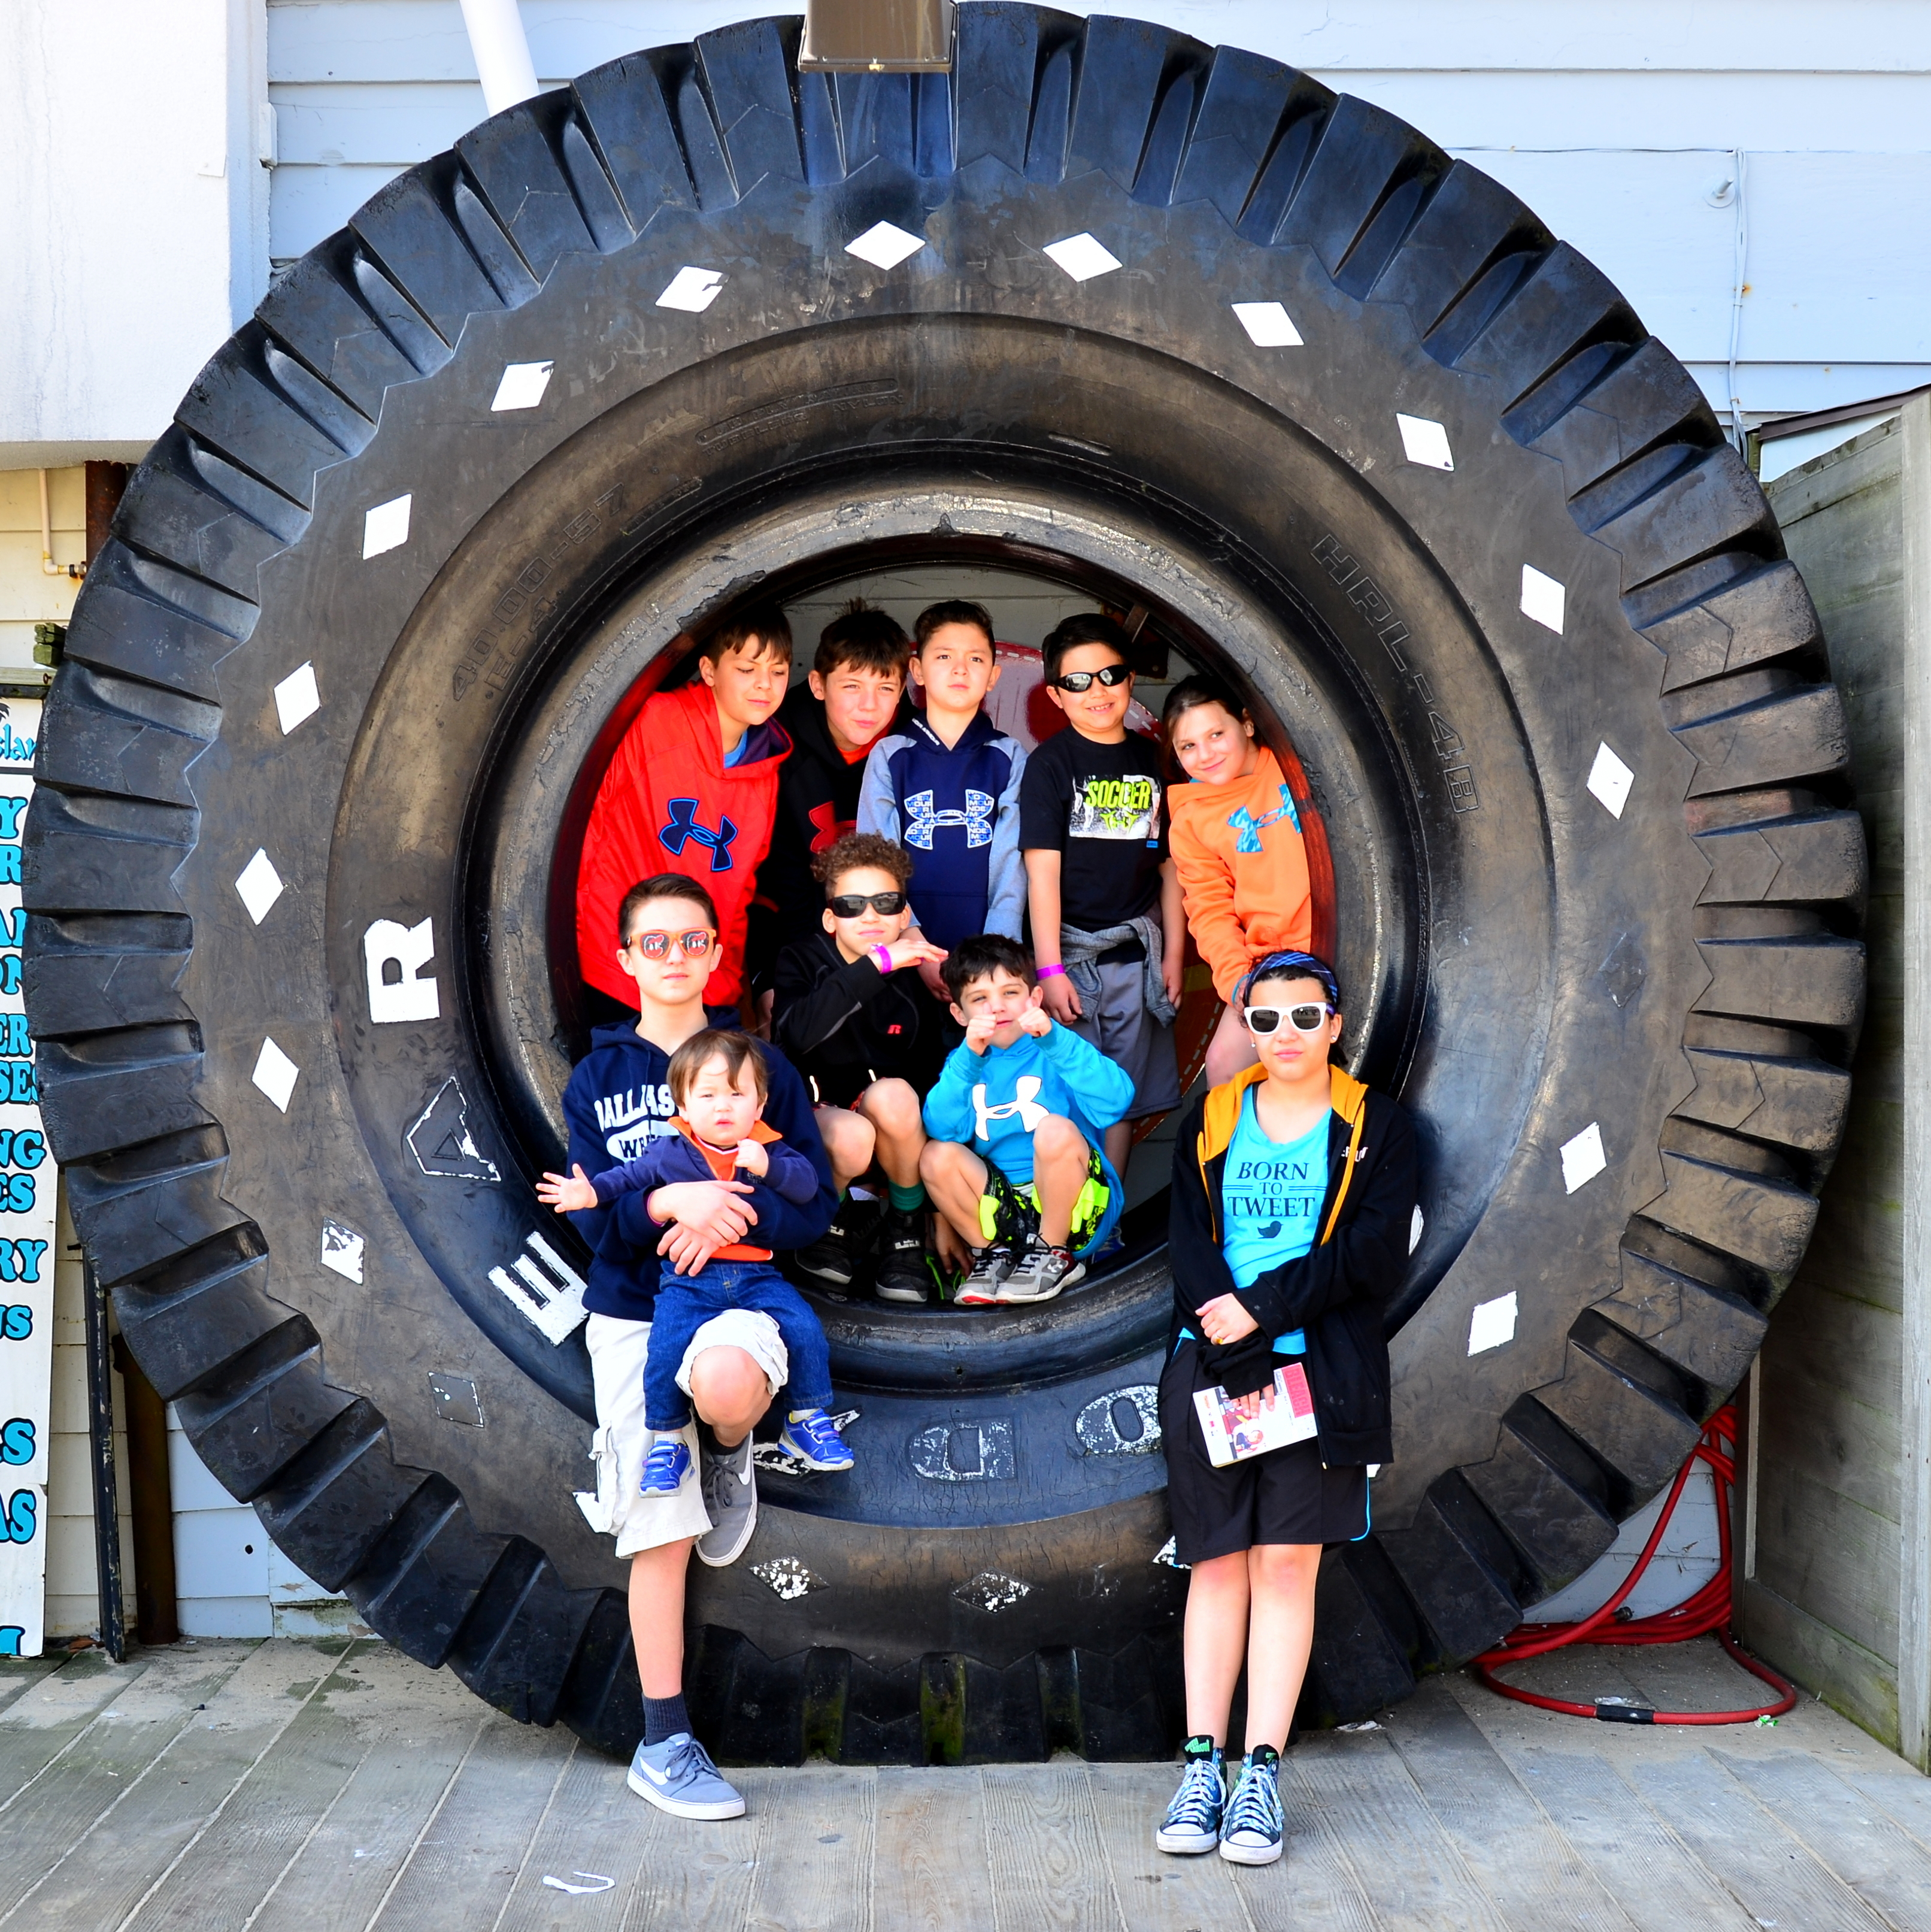 Grandkids in a Three Ton Tire